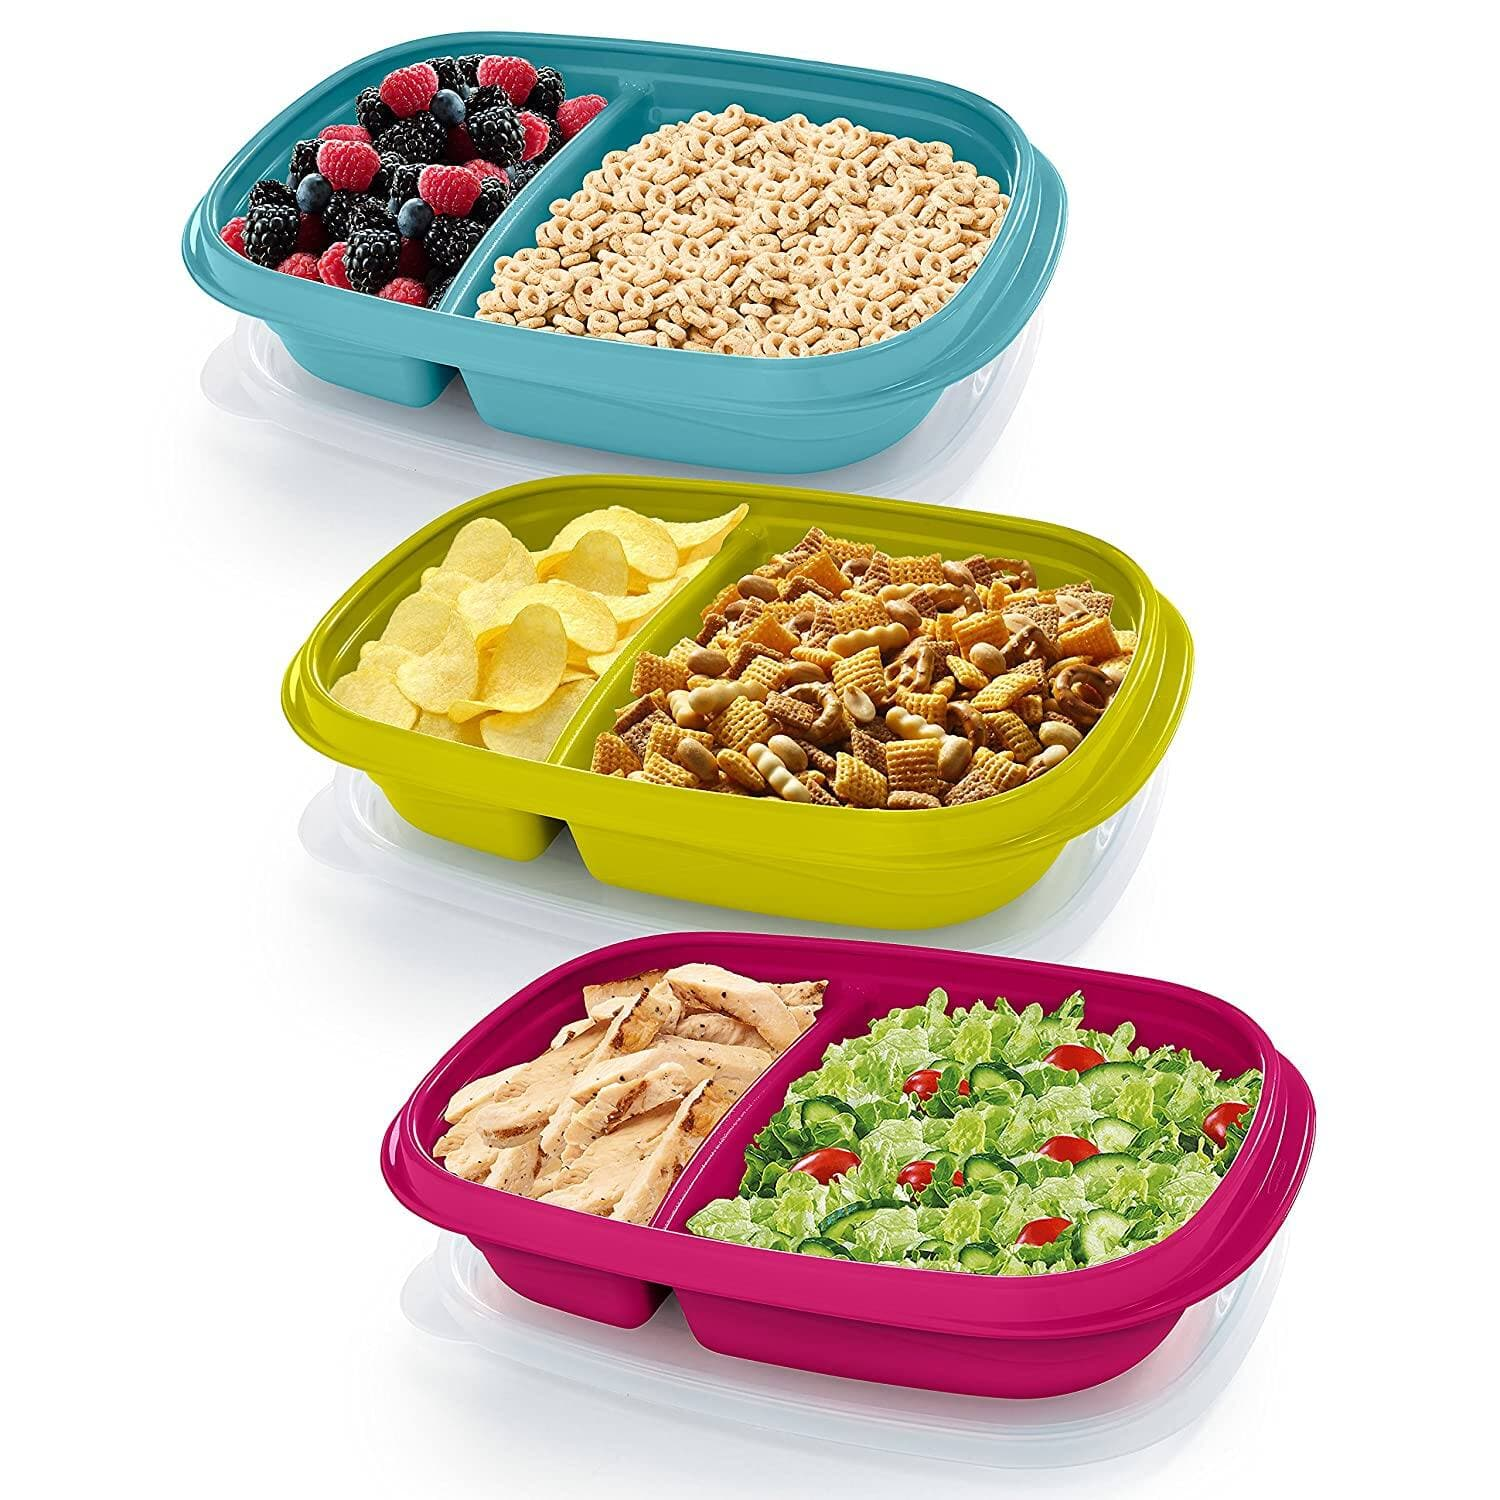 3-Pack Rubbermaid TakeAlongs 3.7-Cup Food Storage Containers $2.46 at Amazon